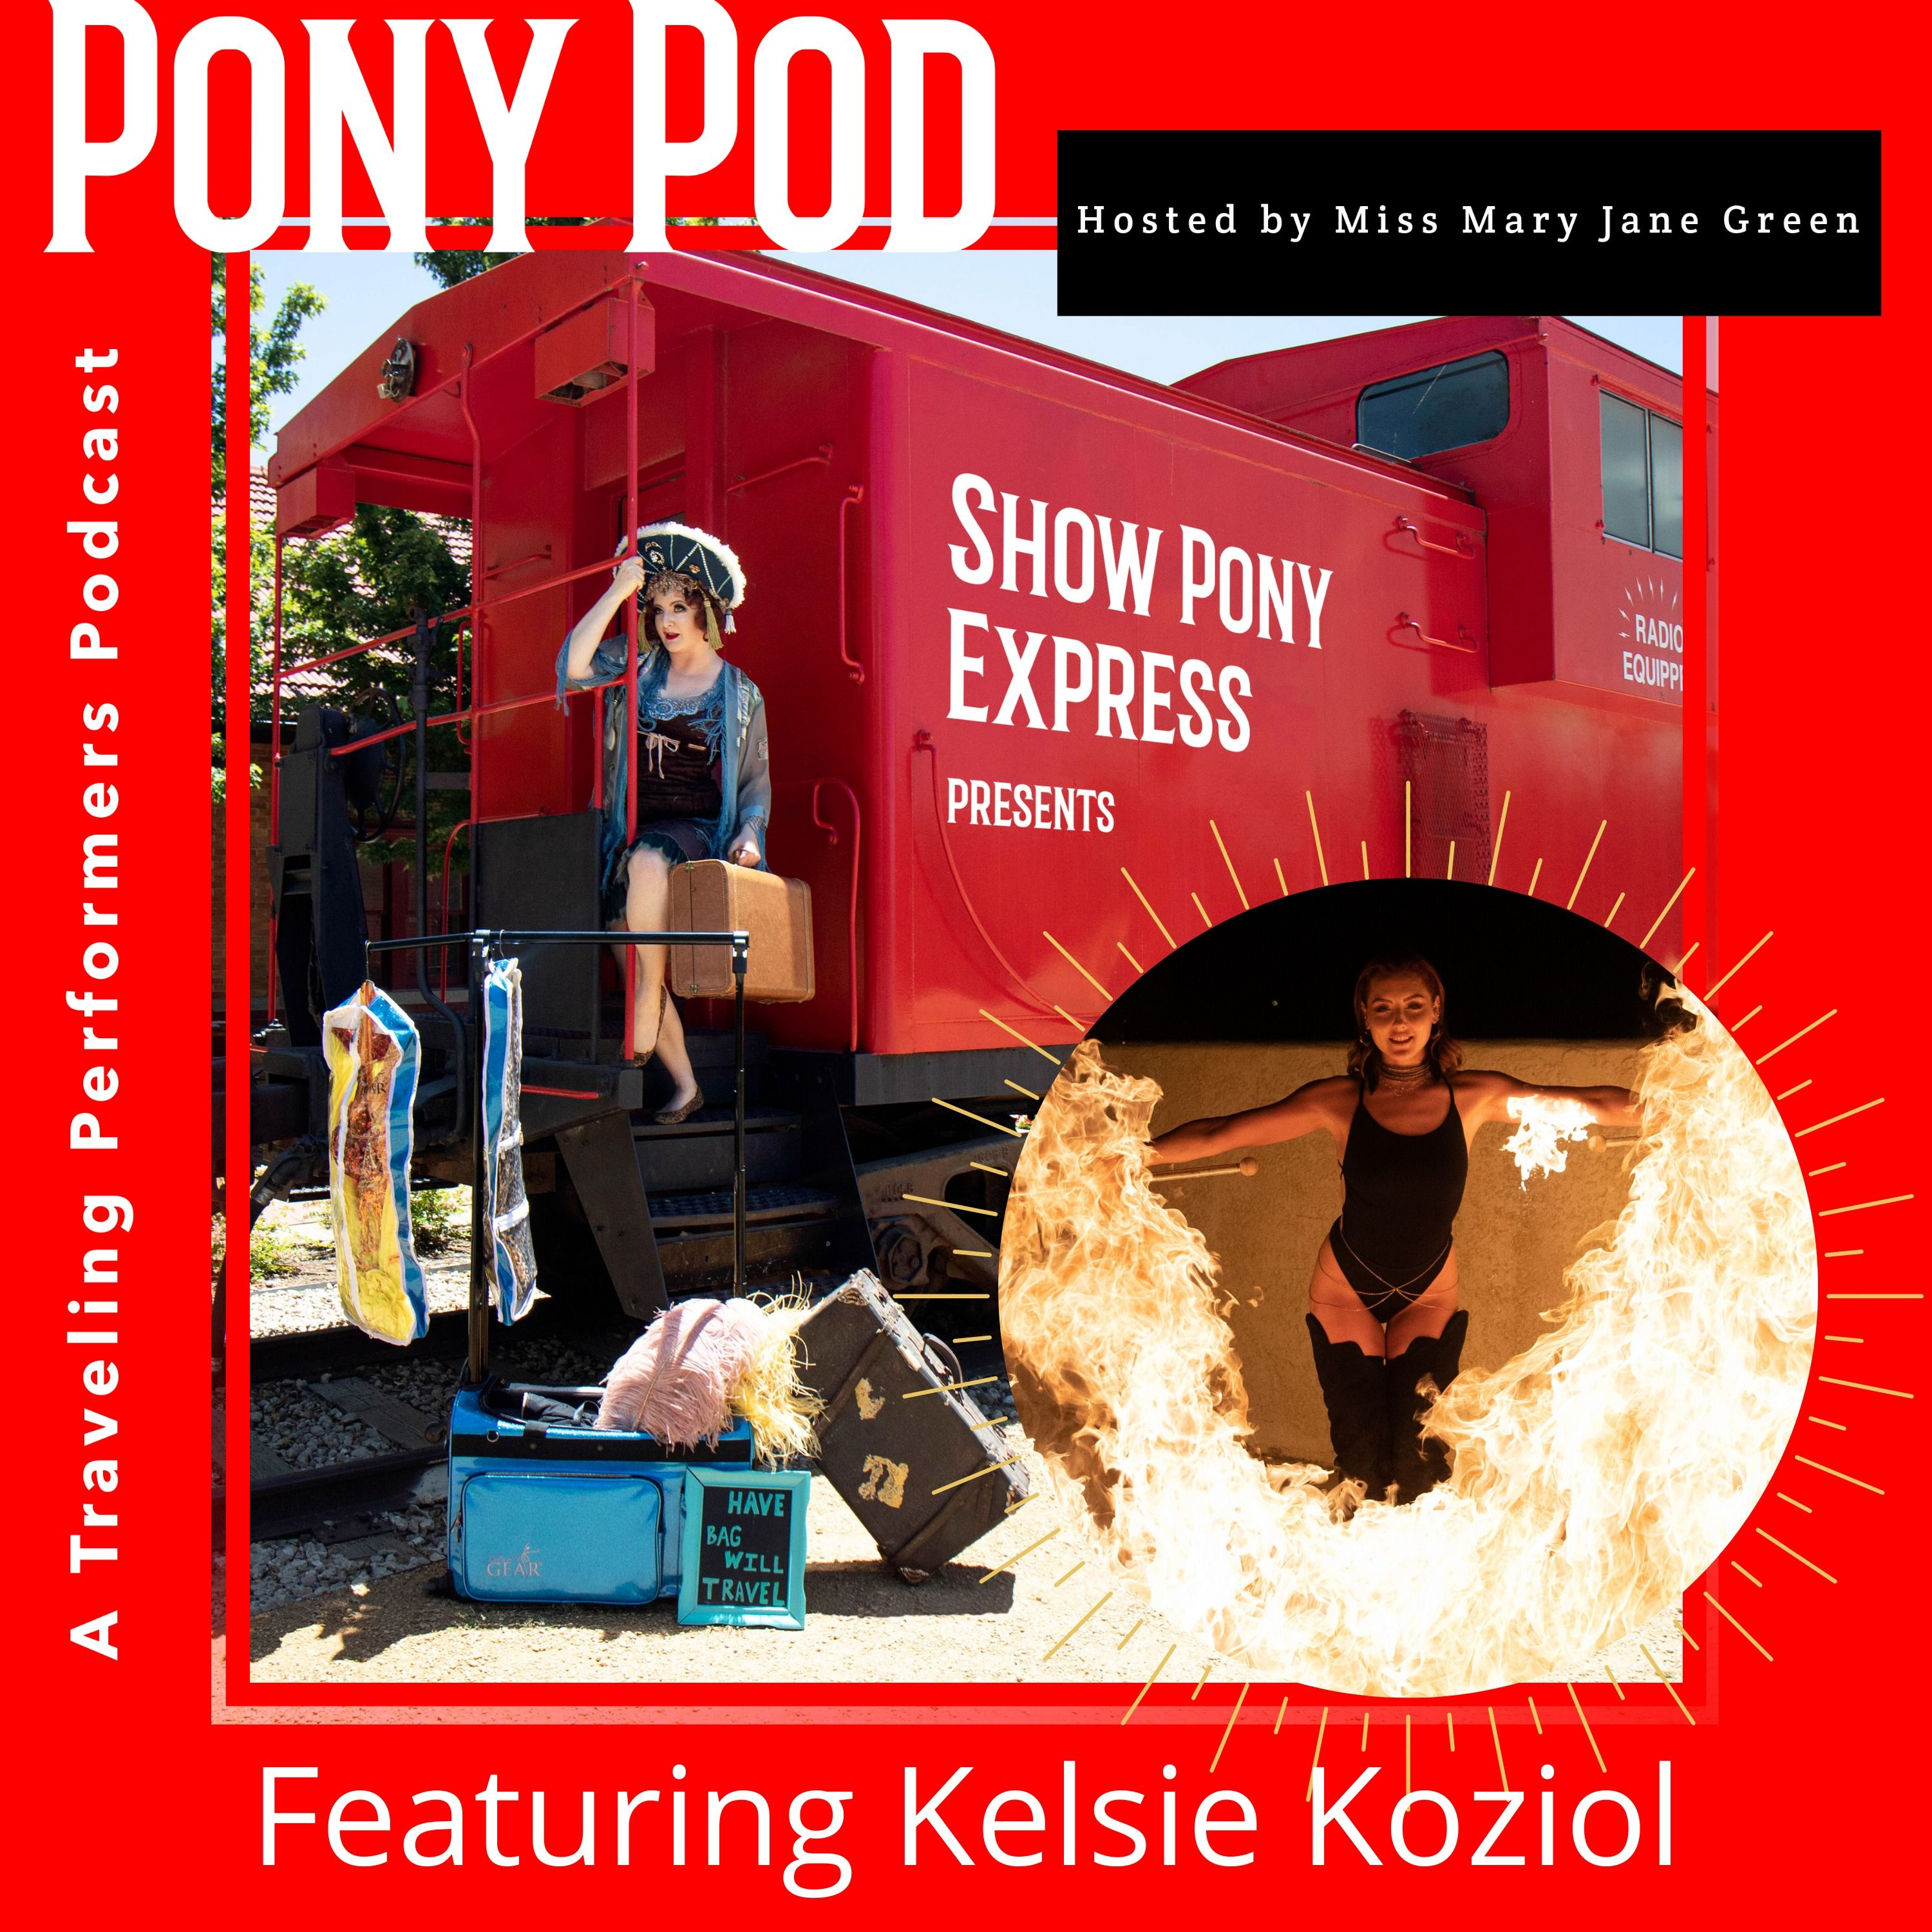 Pony Pod - A Traveling Performers Podcast Featuring Kelsie Koziol